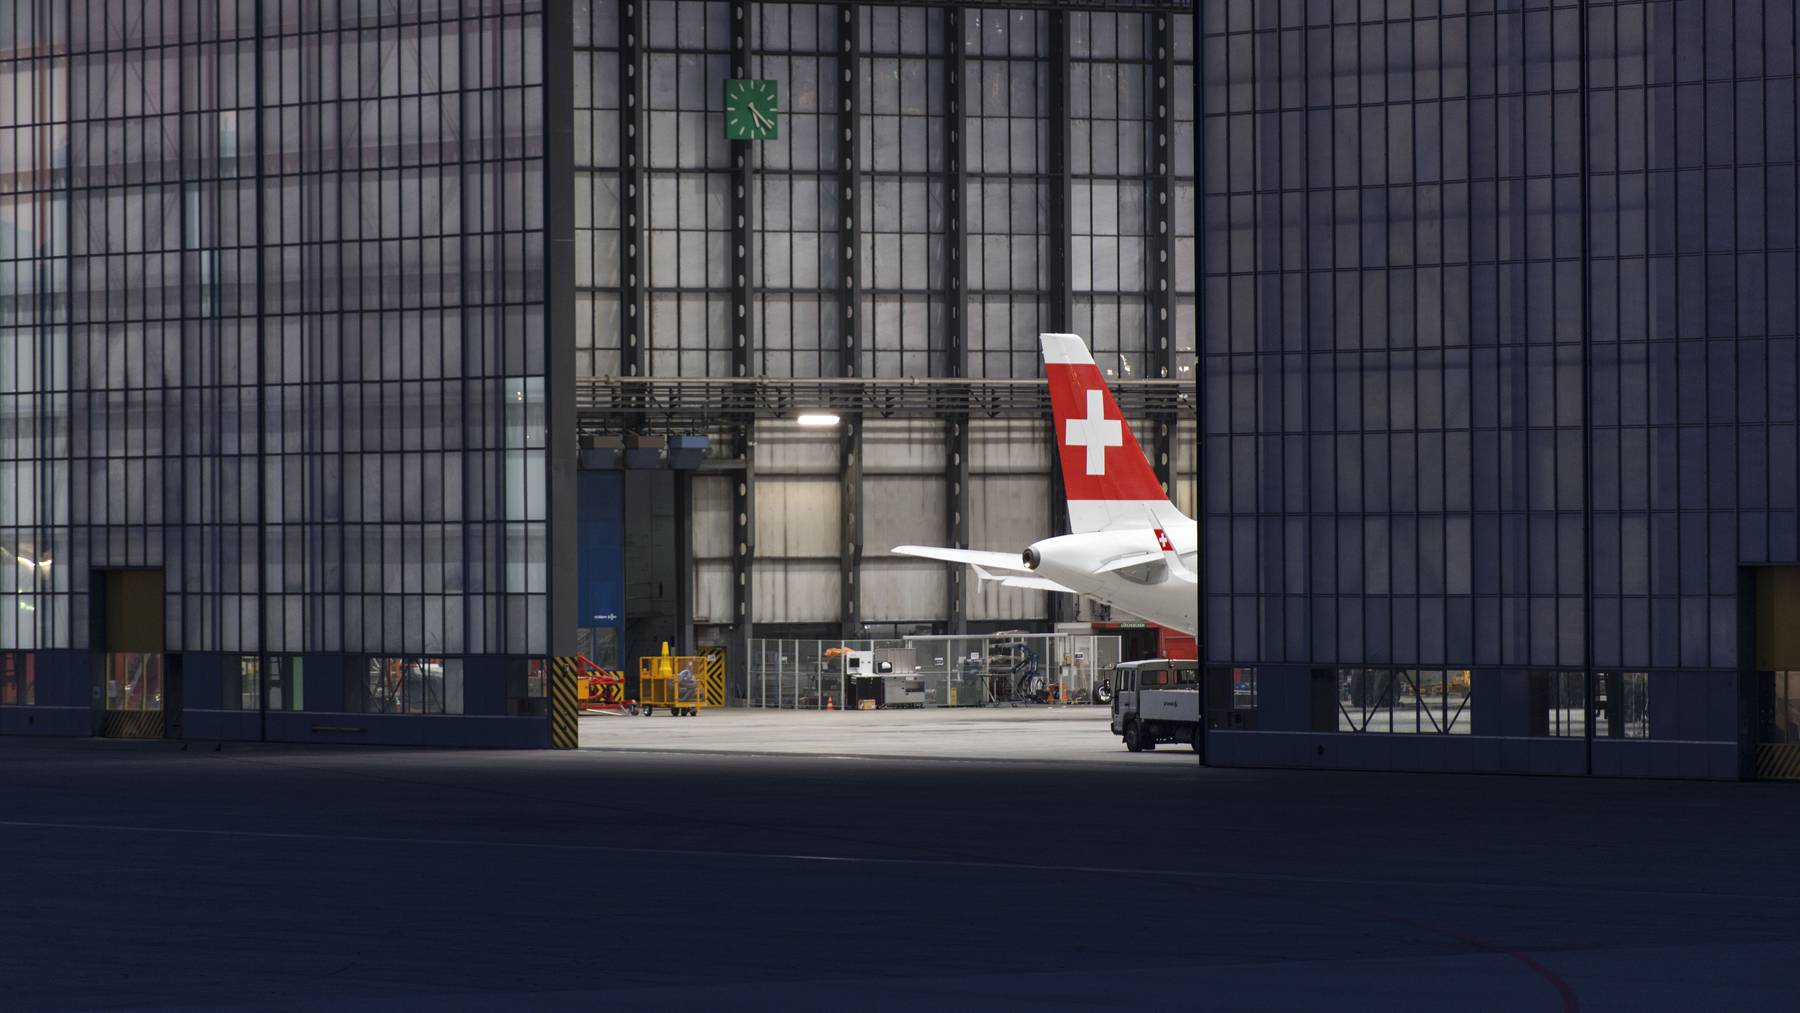 The tail section of a Swiss International Air Lines airplane at the aircraft maintenance center at Zurich Airport in Kloten in the Canton of Zurich, Switzerland, pictured on July 24, 2014.